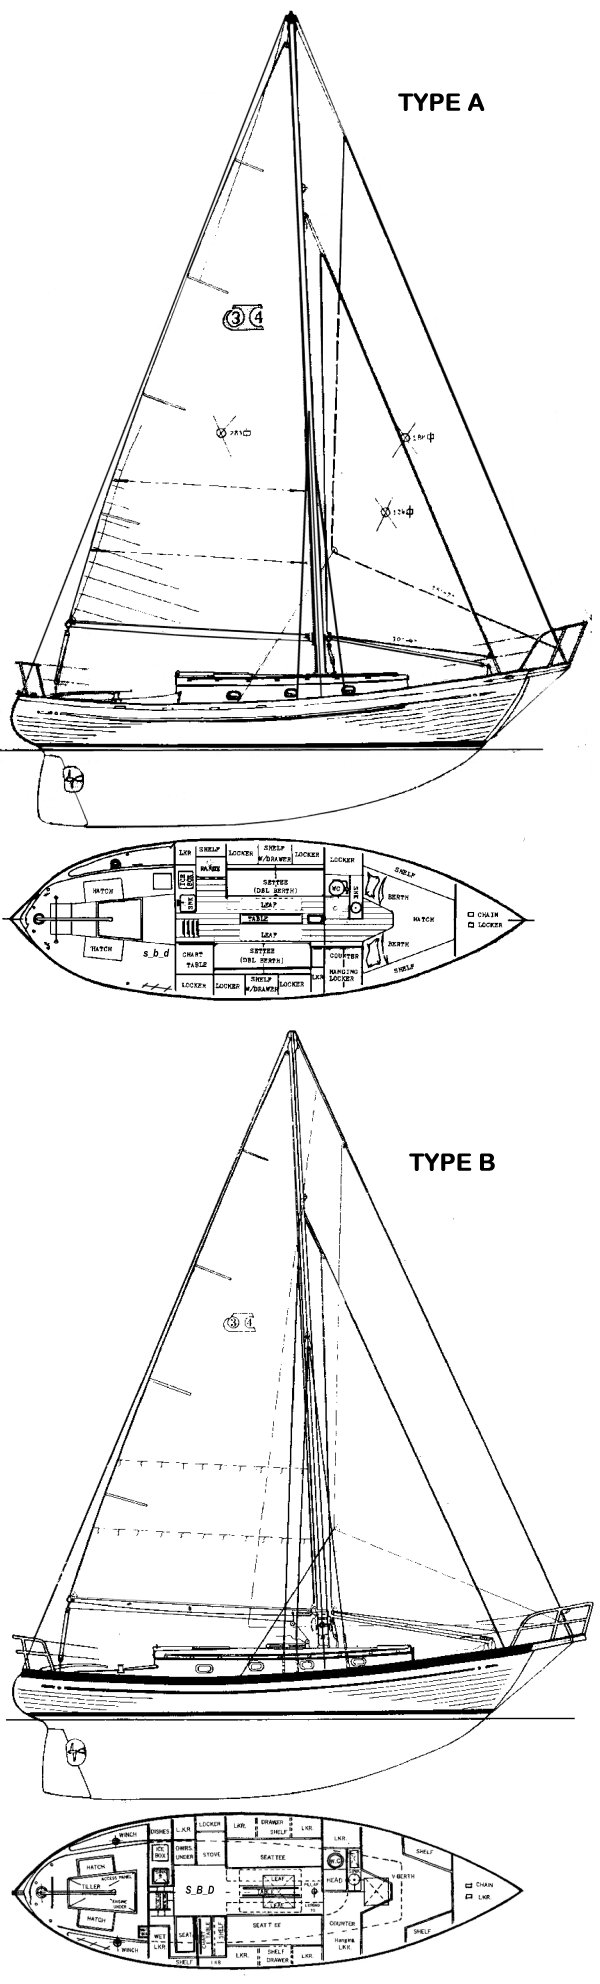 ct 34 sailboat specifications and details on sailboatdata com